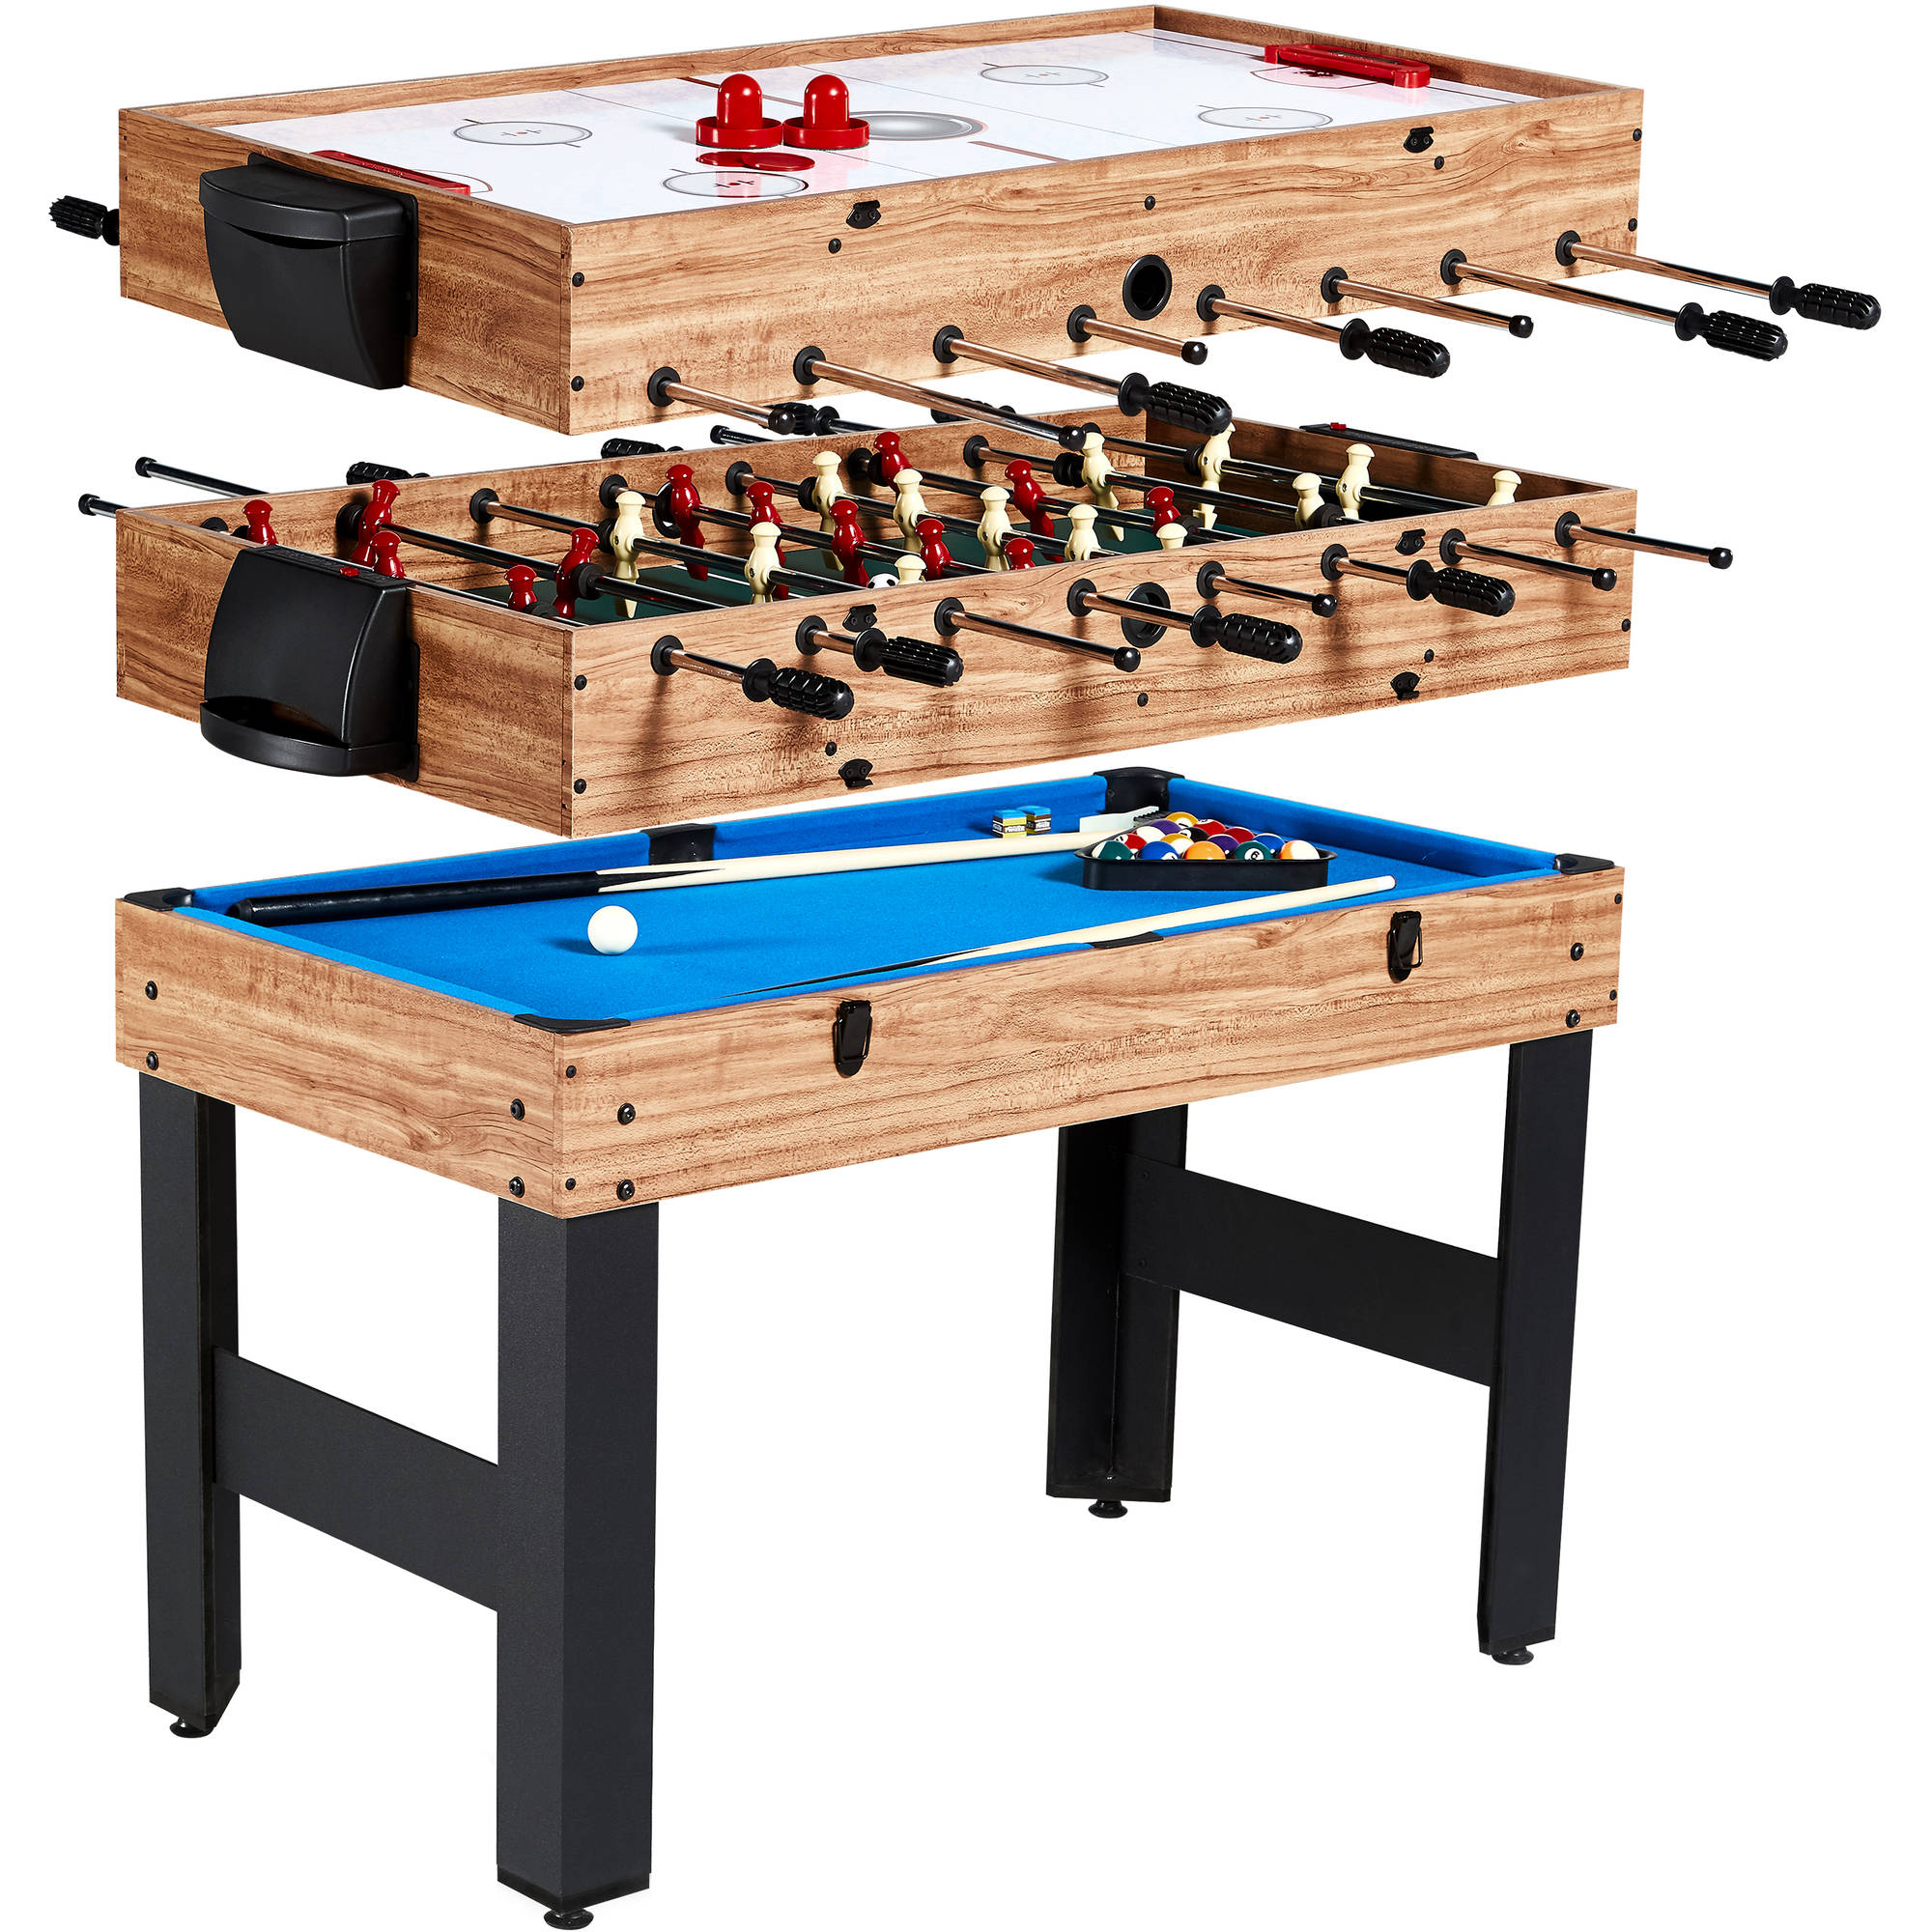 Bon MD Sports 48 Inch 3 In 1 Combo Game Table, 3 Games With